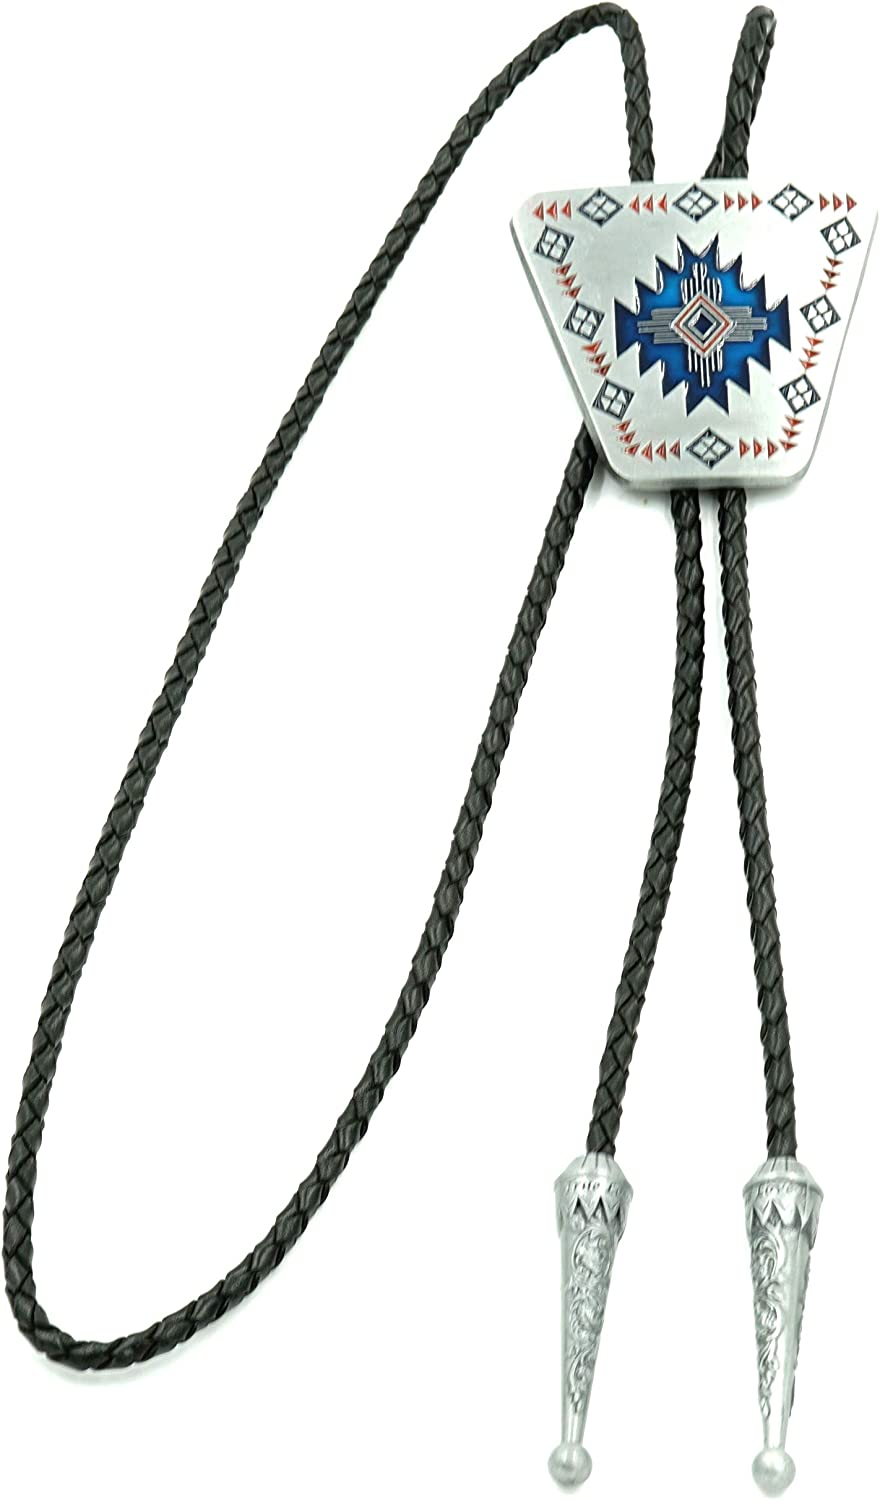 Popular shop is Houston Mall the lowest price challenge Native American Southwest Enamel Western Tie Bolo Leather Neck